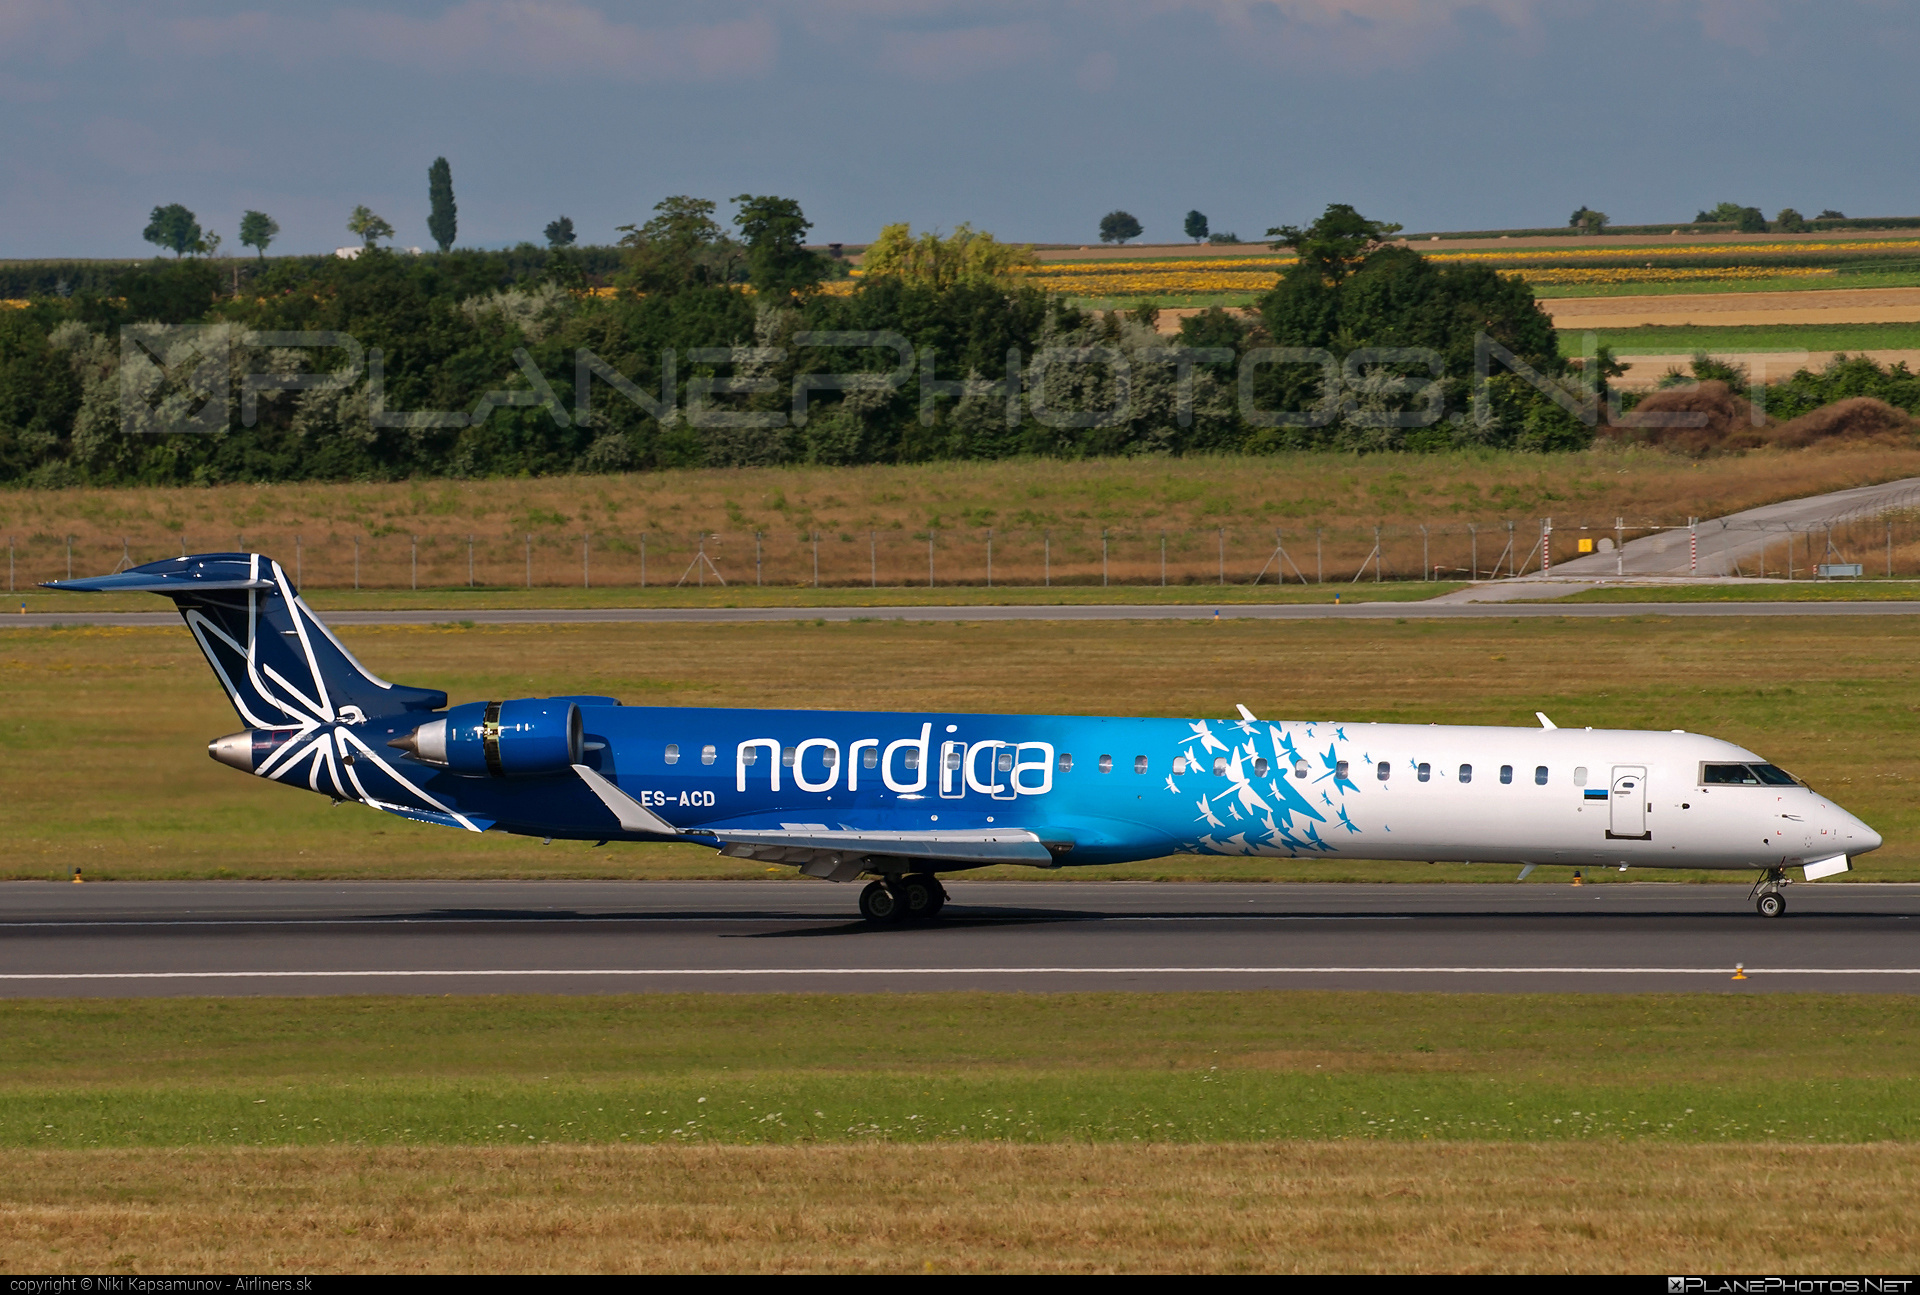 Bombardier CRJ900 NextGen - ES-ACD operated by Nordica #bombardier #crj900 #crj900nextgen #crj900ng